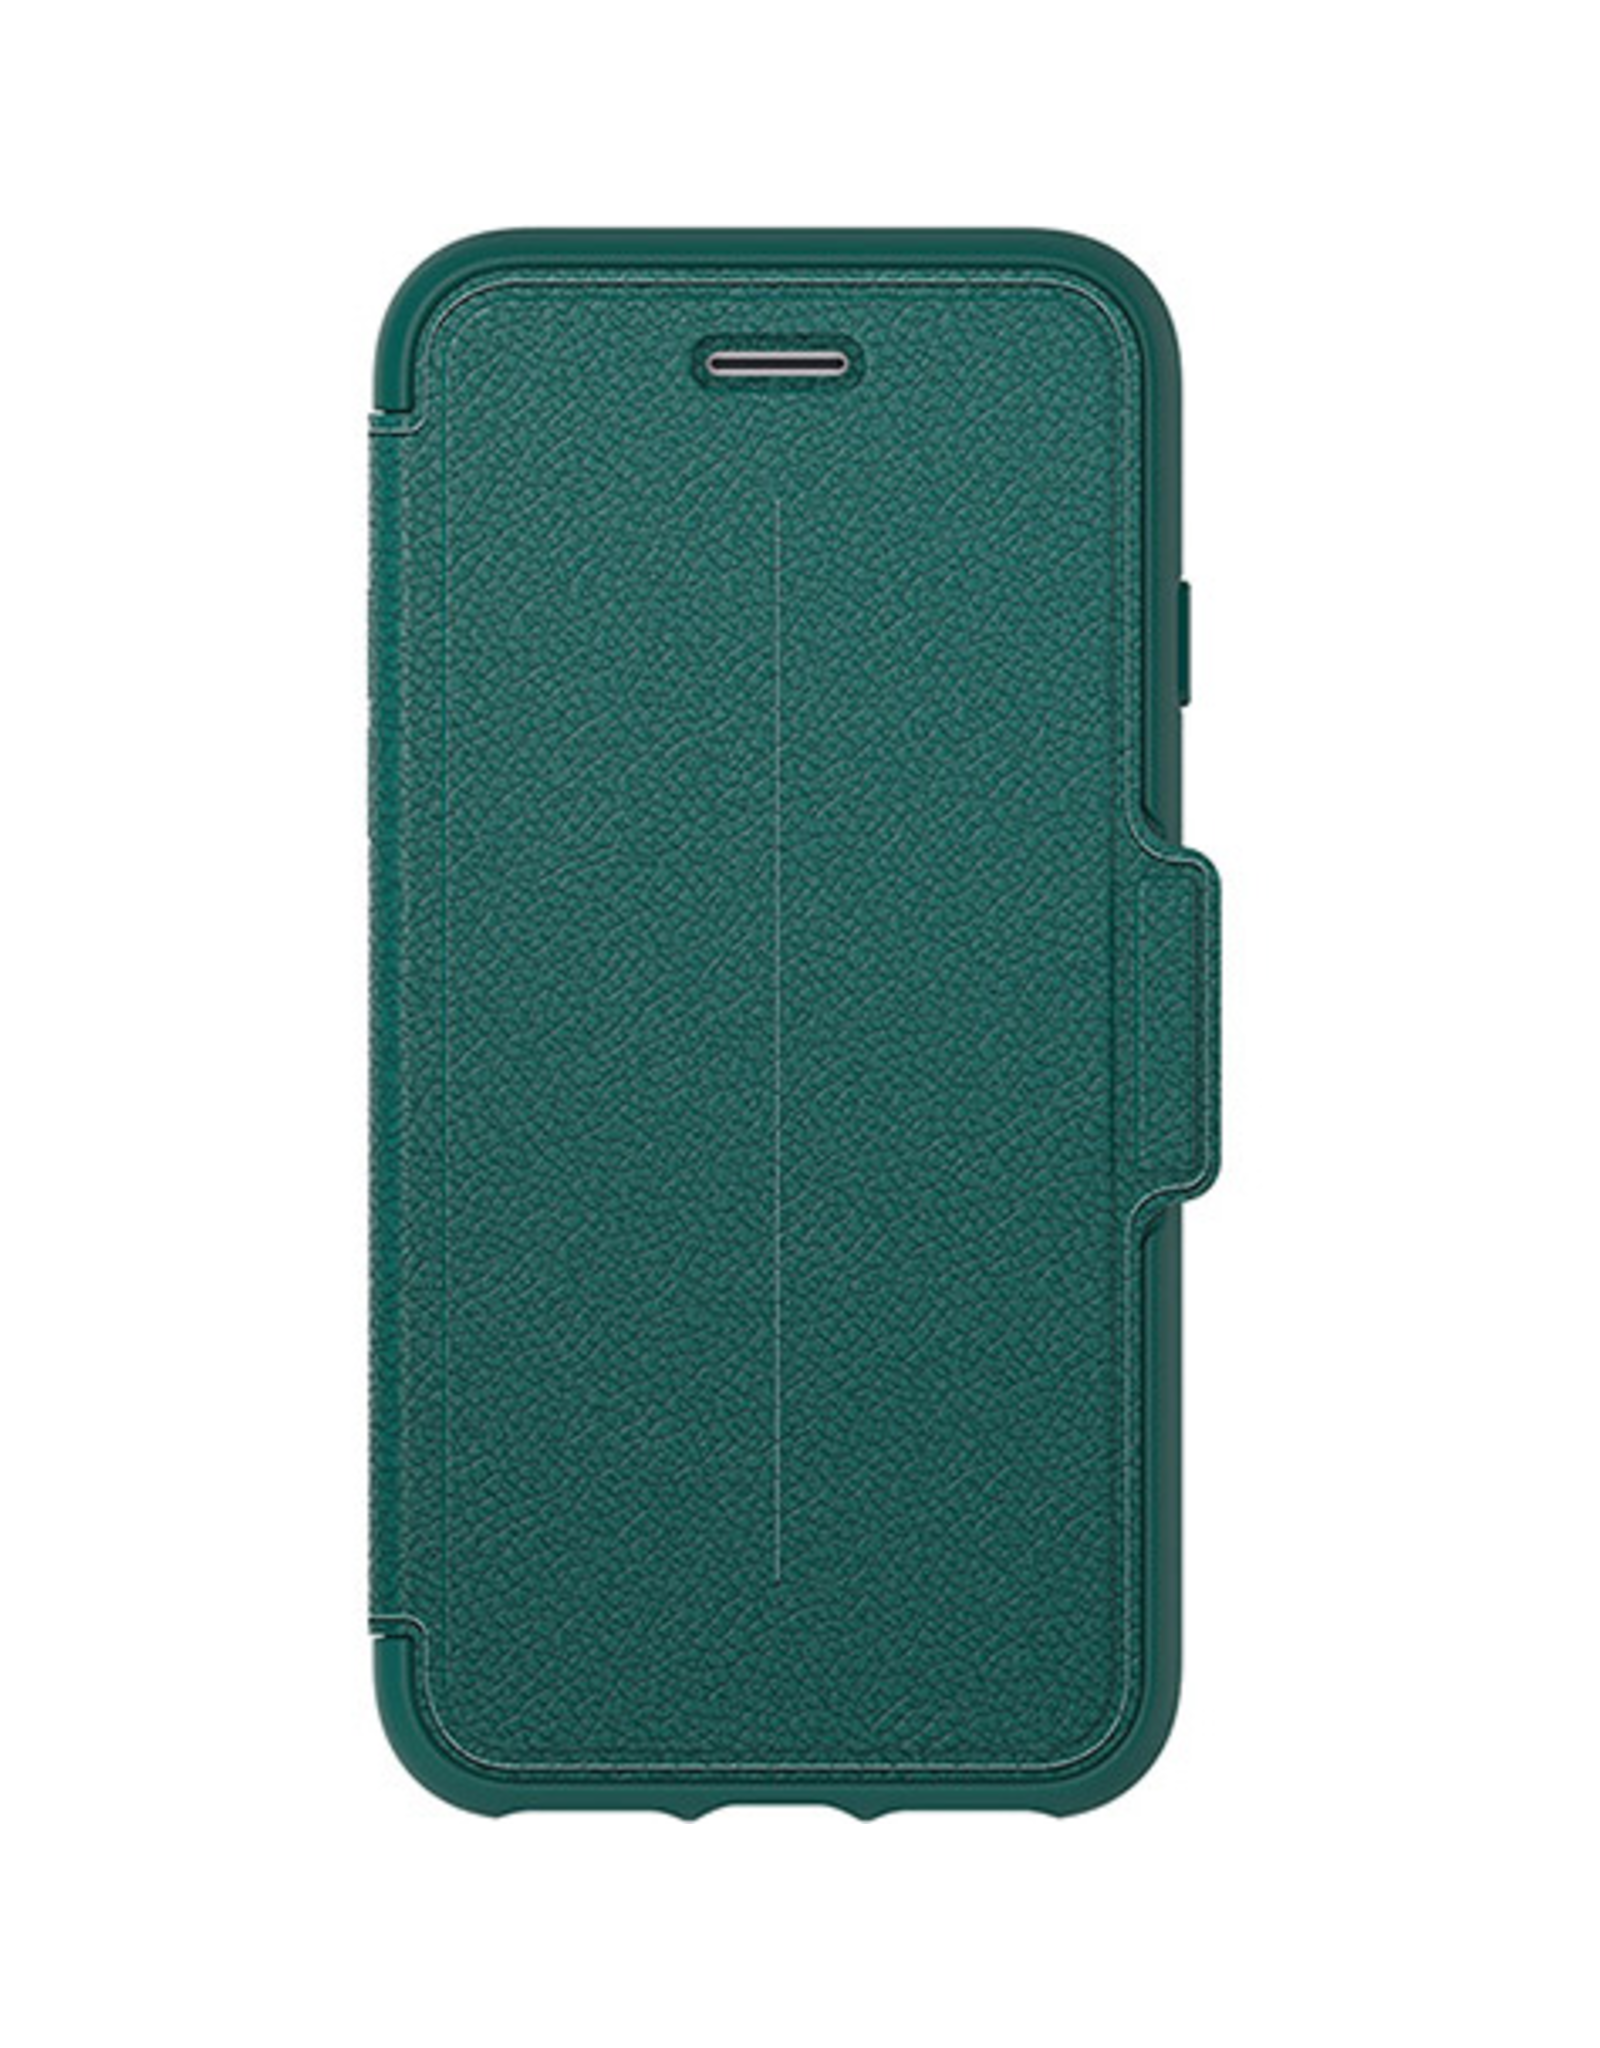 Otterbox OtterBox Strada Case suits iPhone 7/8 - Deep Teal